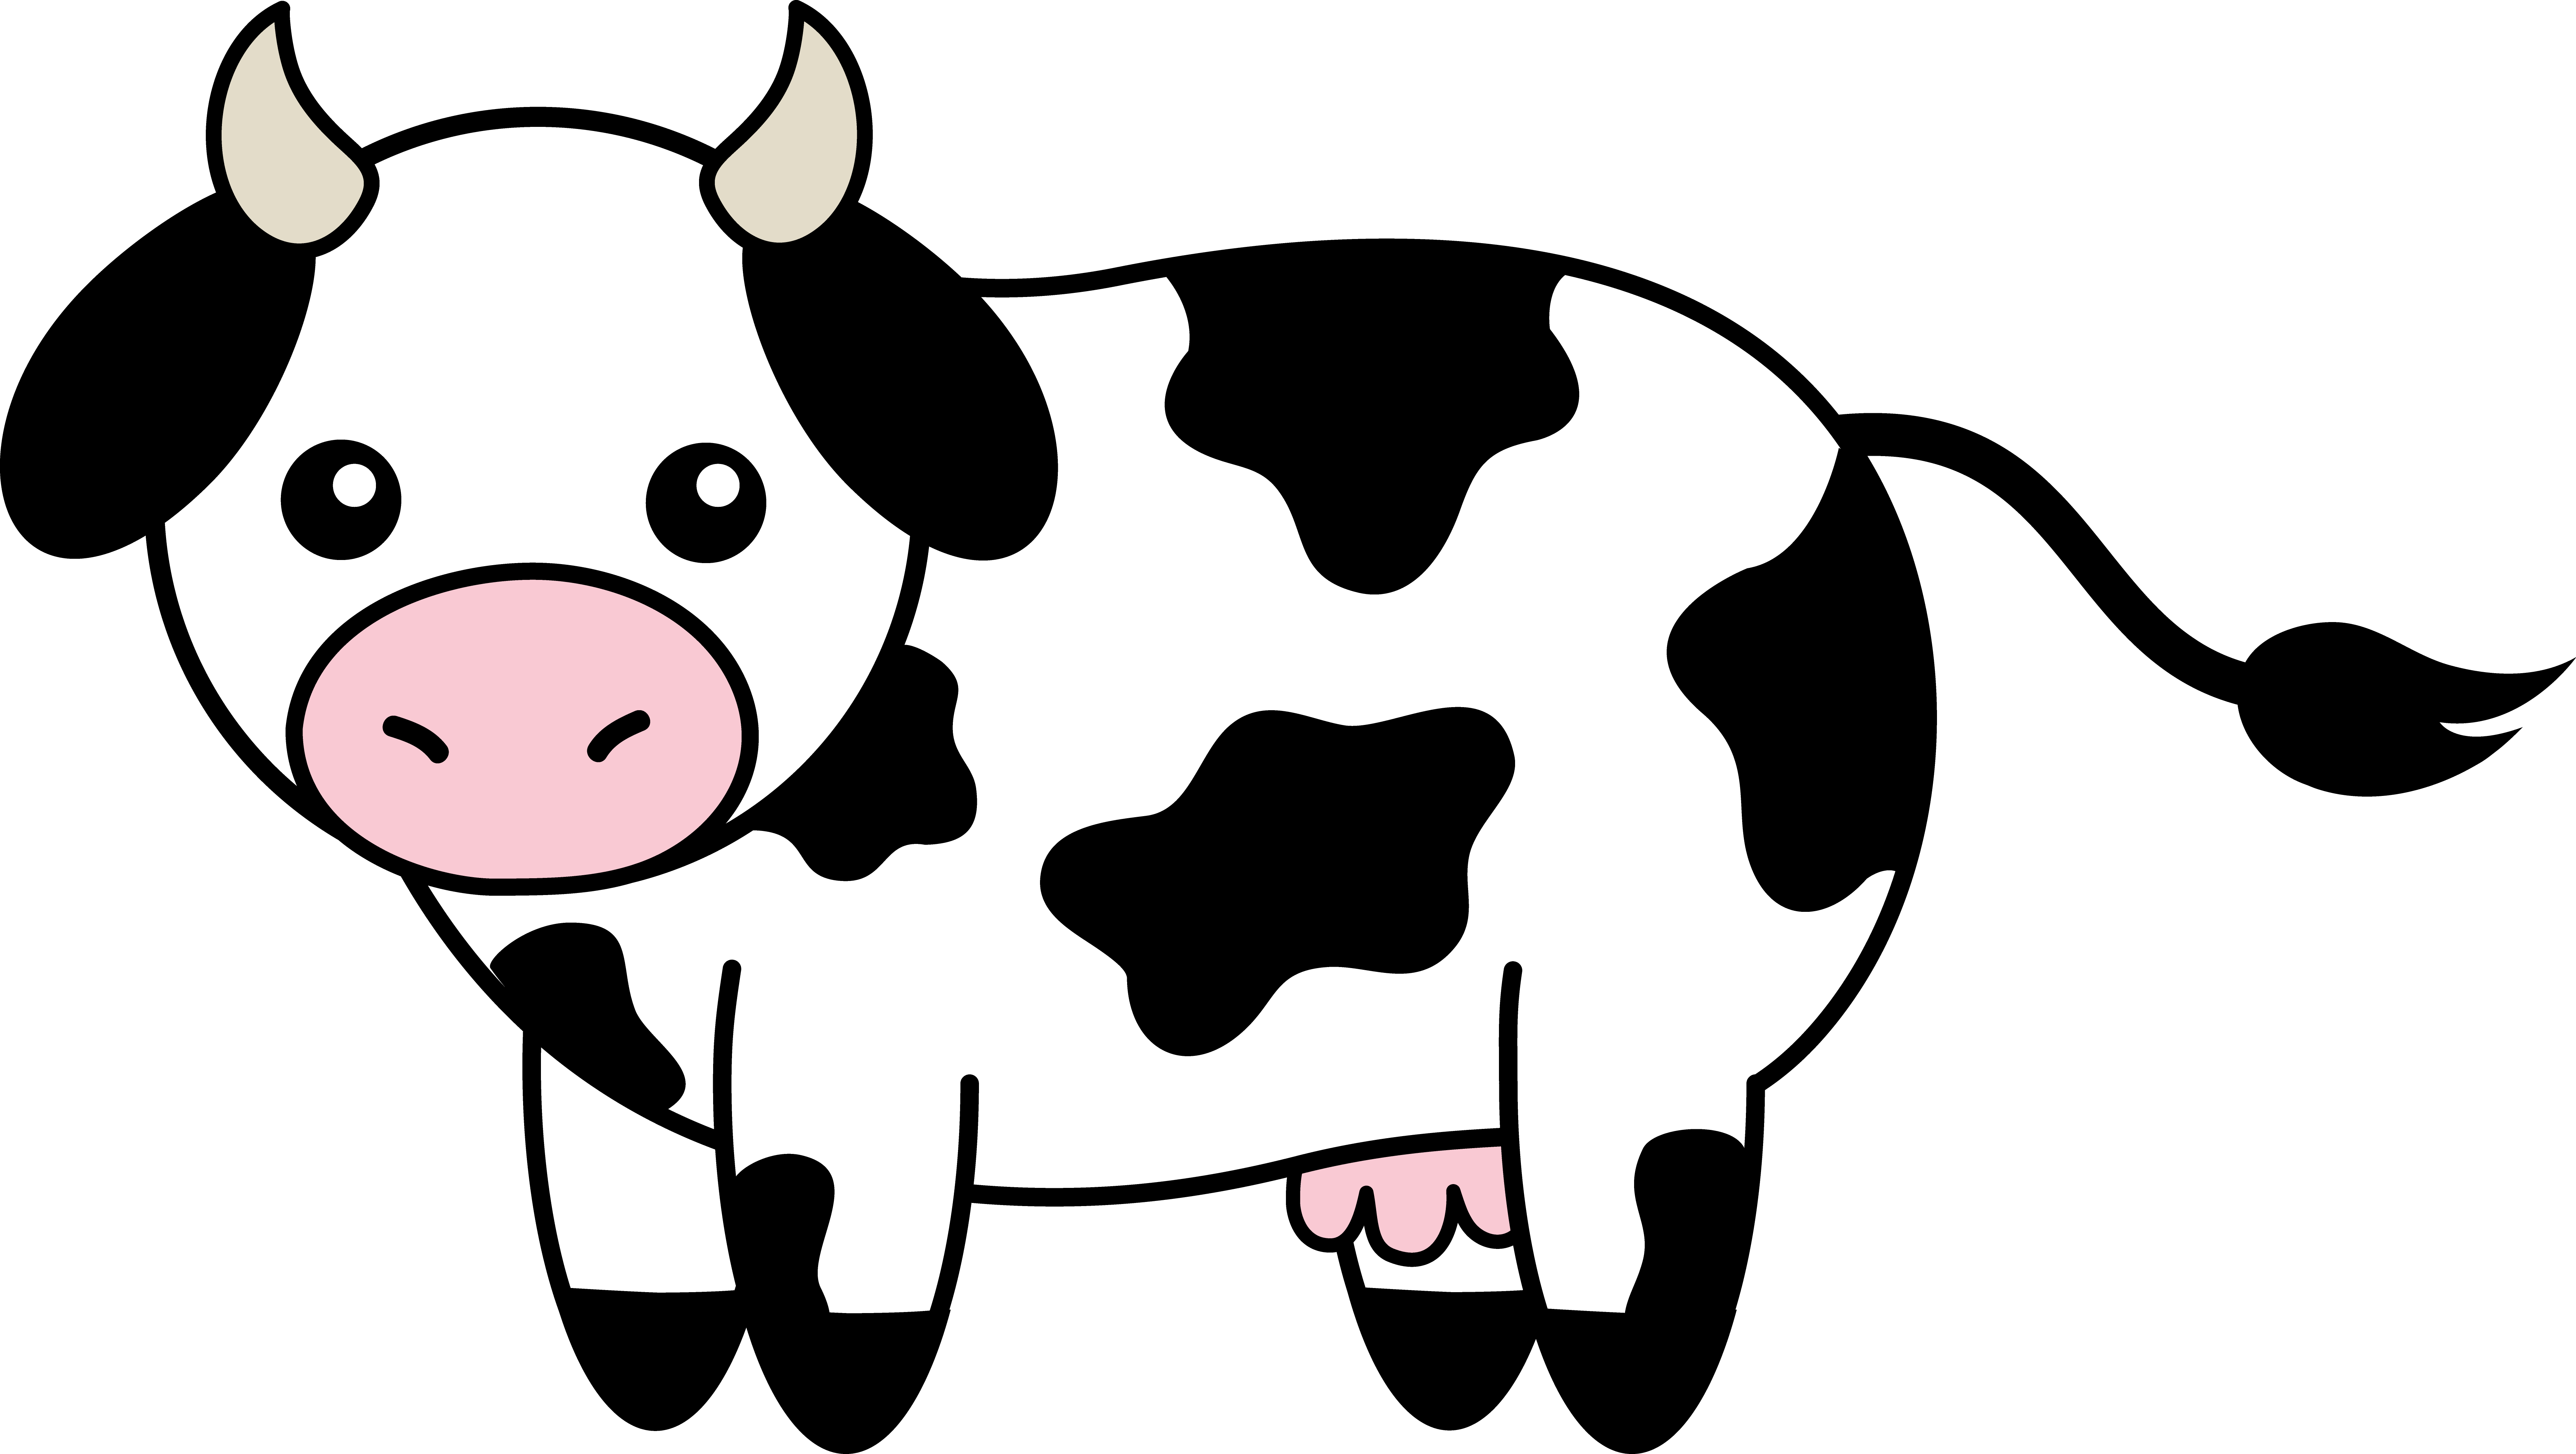 Free black cow clipart black and white jpg royalty free download Free Cow Images Free, Download Free Clip Art, Free Clip Art on ... jpg royalty free download